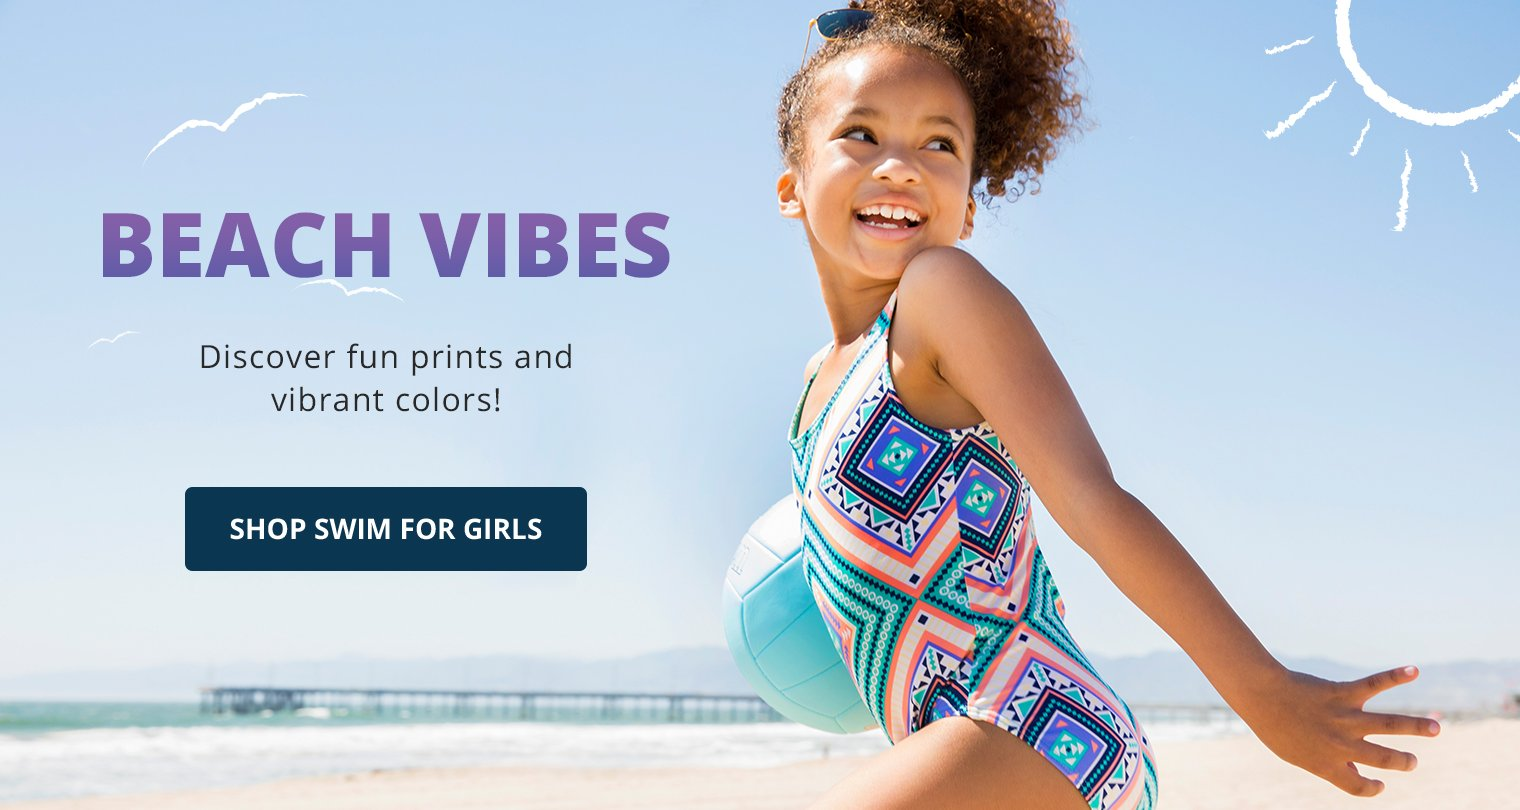 Beach Vibes. Discover fun prints and vibrant colors! Shop Swim for Girls.